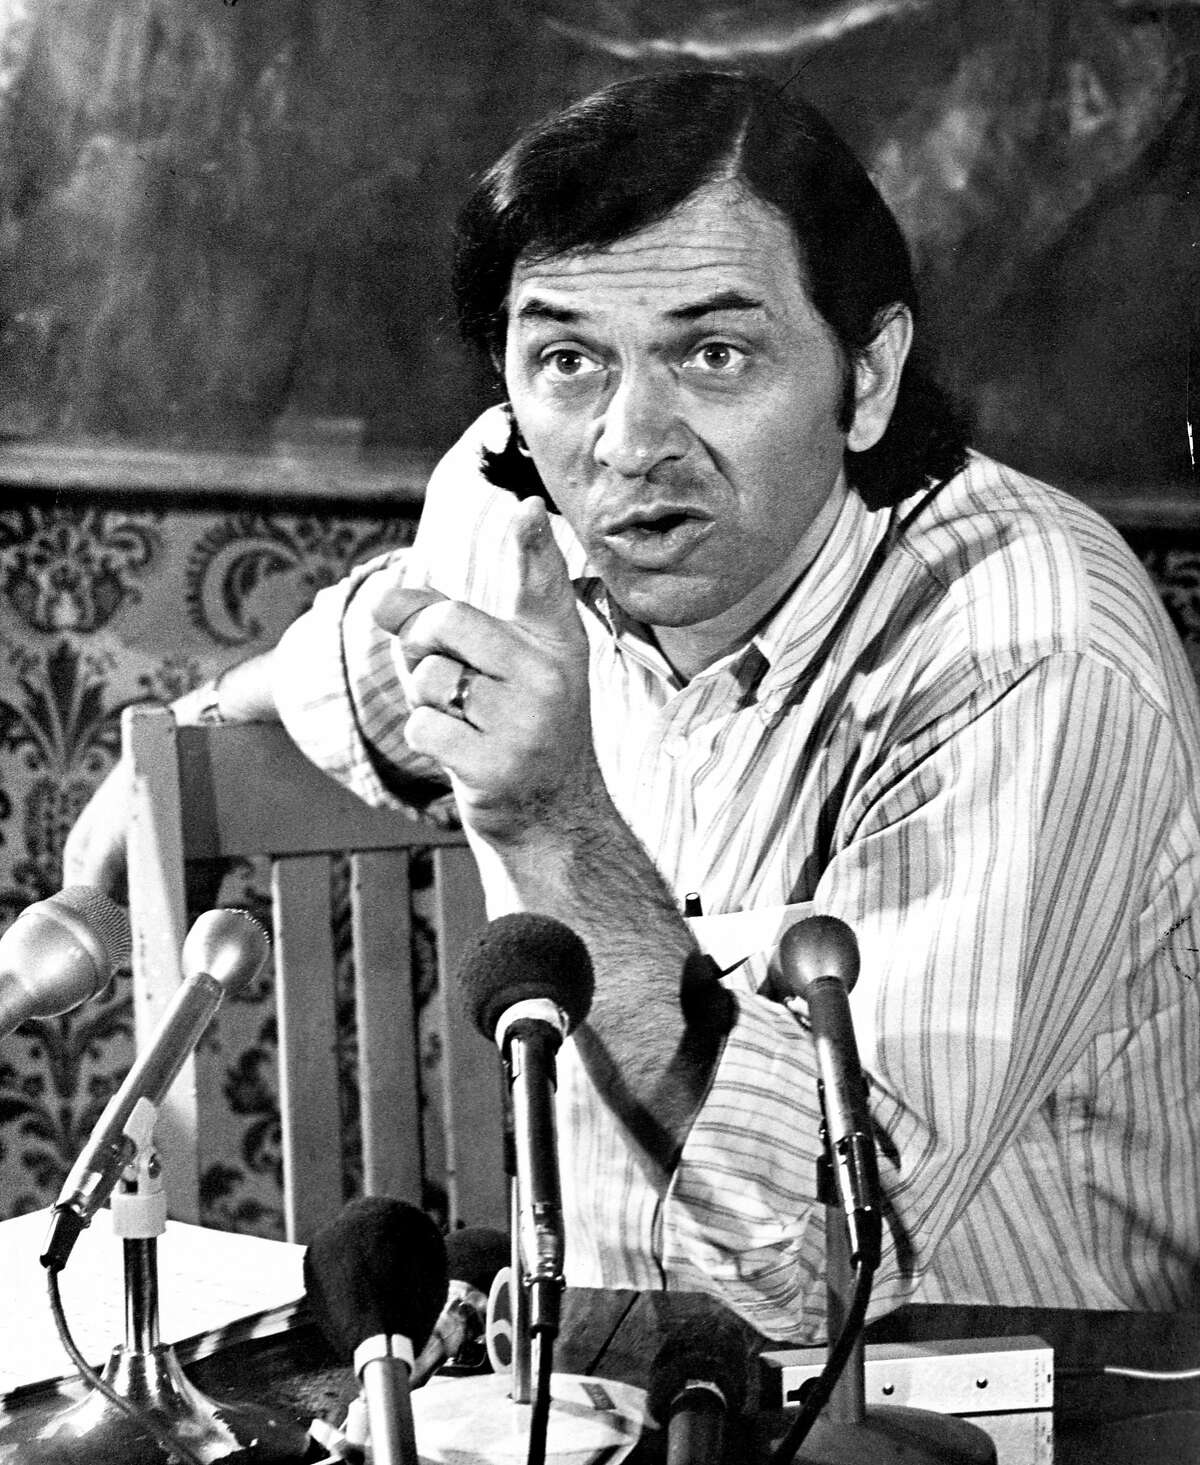 1971: Rock promoter Bill Graham during a press conference.